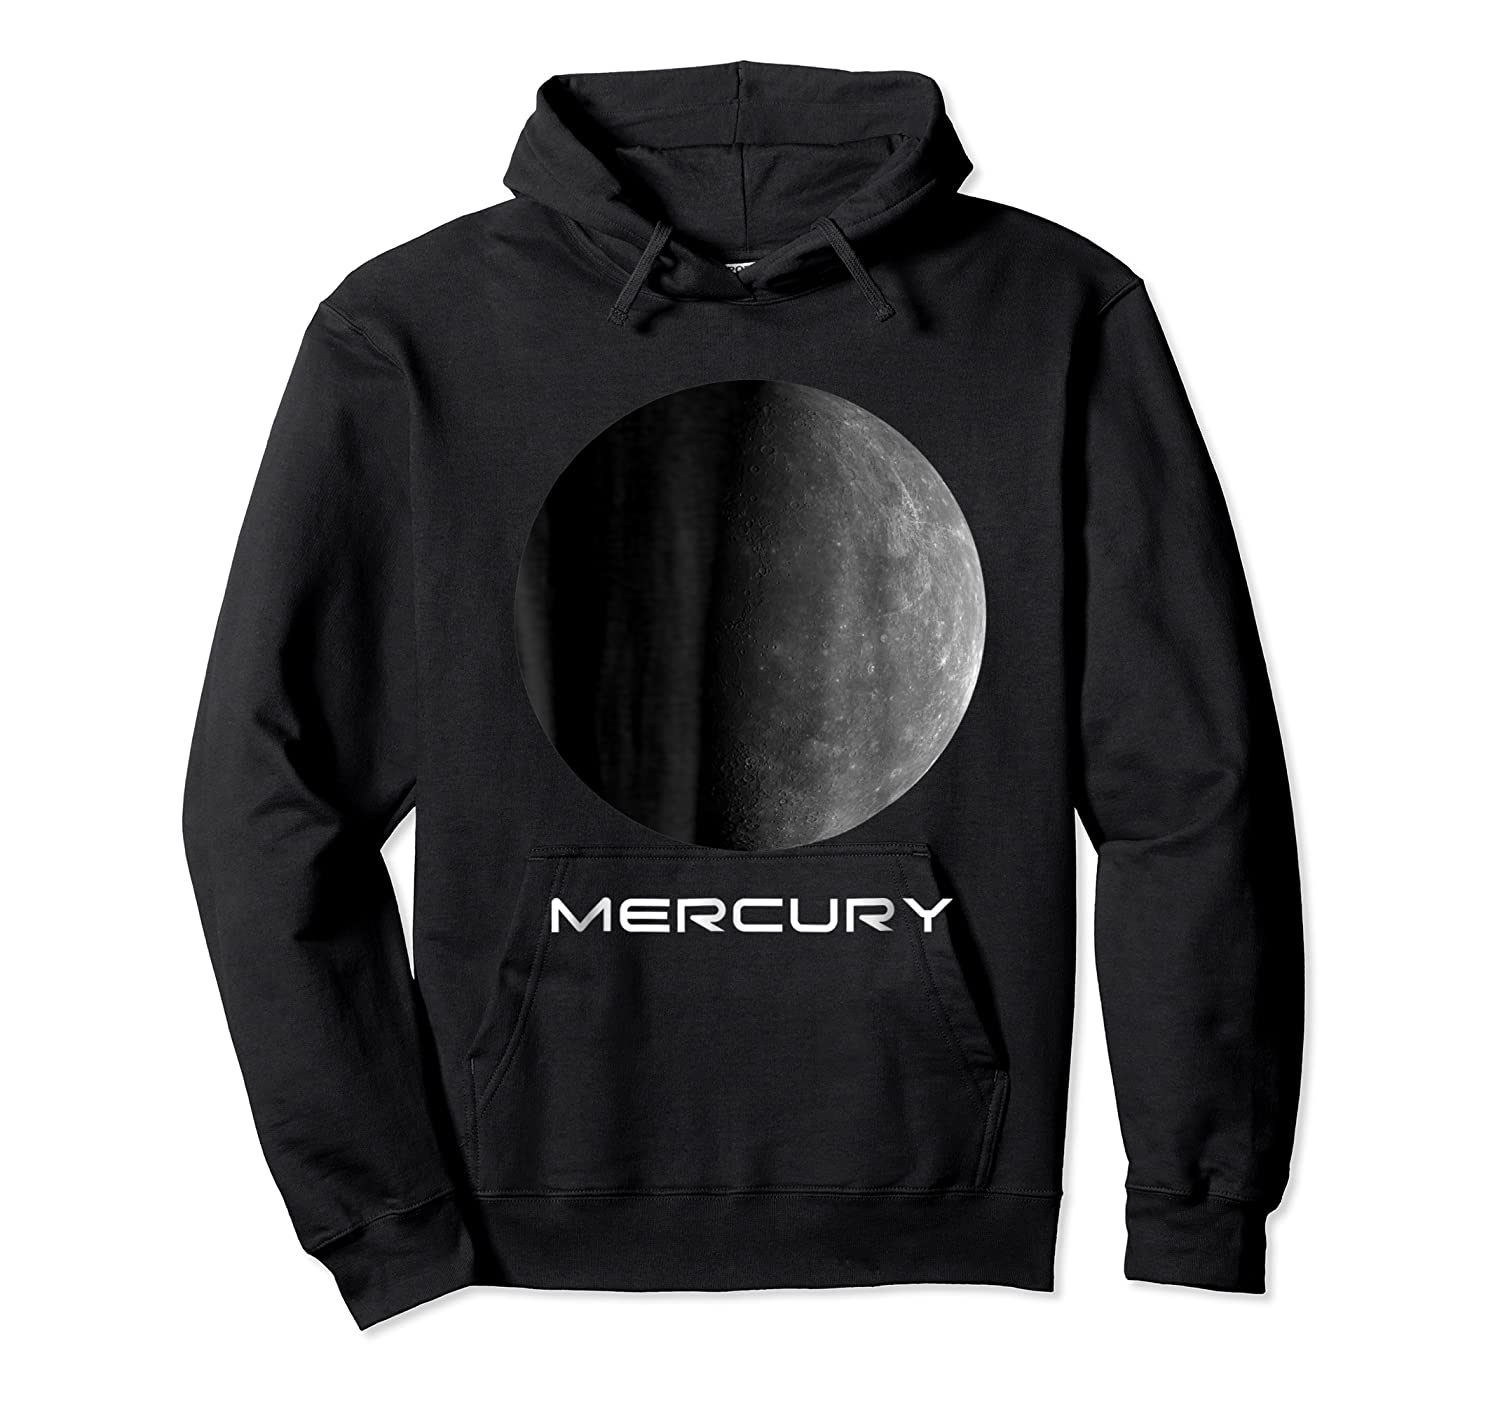 Mercury Perfect Gift For Astronomy Or Space Lovers Shirts Unisex Pullover Hoodie